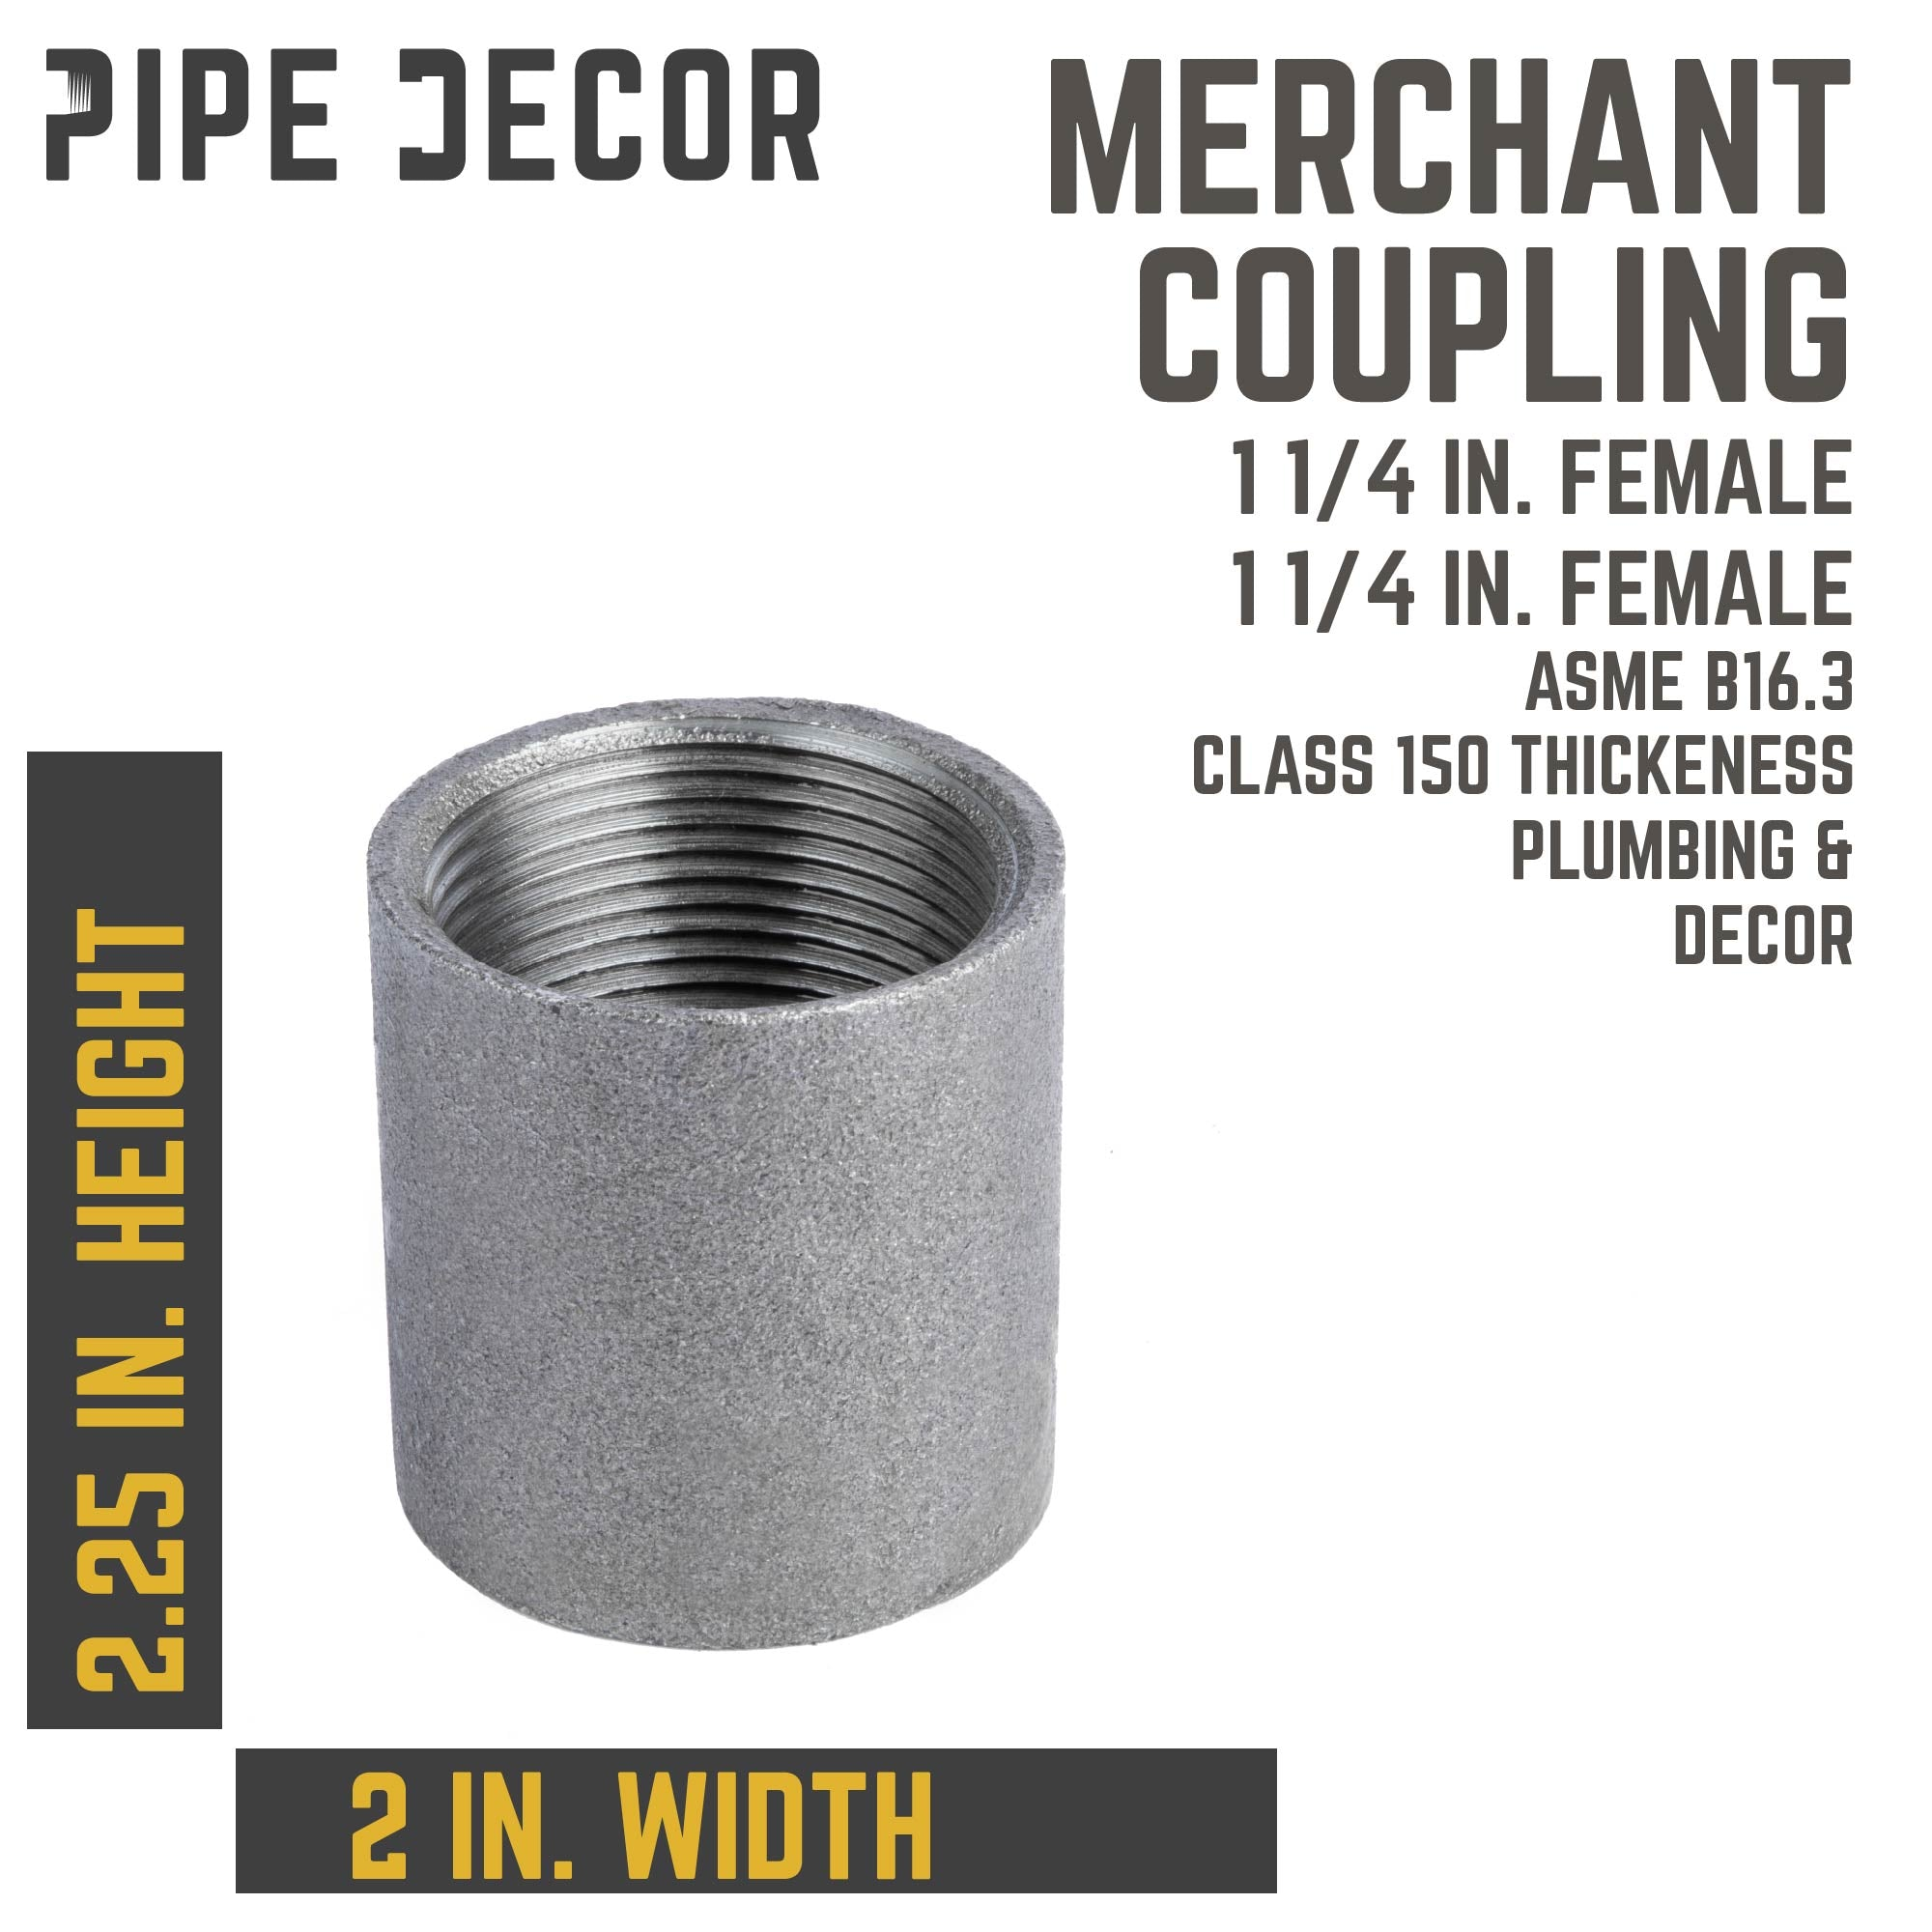 1 1/4 in. Black merchant coupling - Pipe Decor